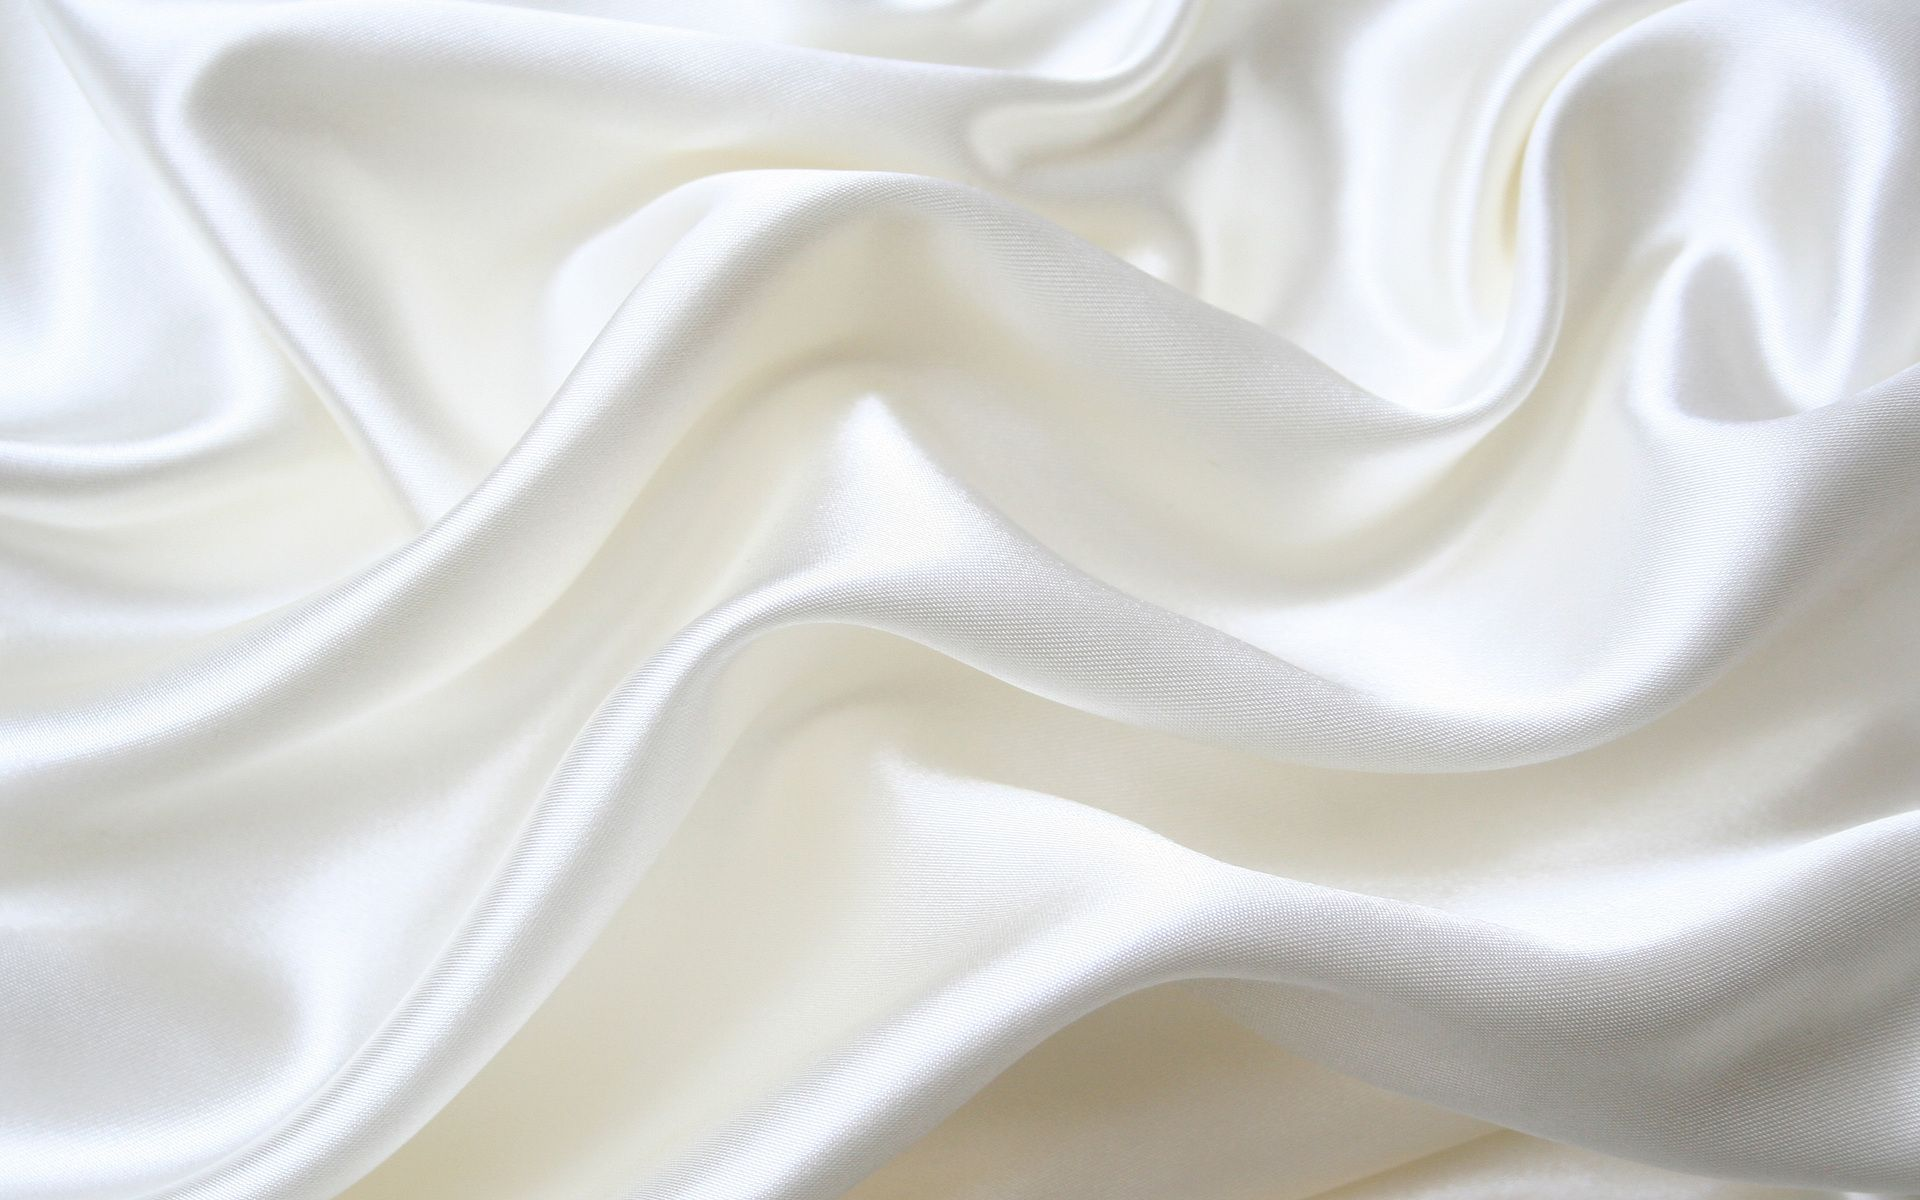 Texture Background White Silk Fabric Cloth Download